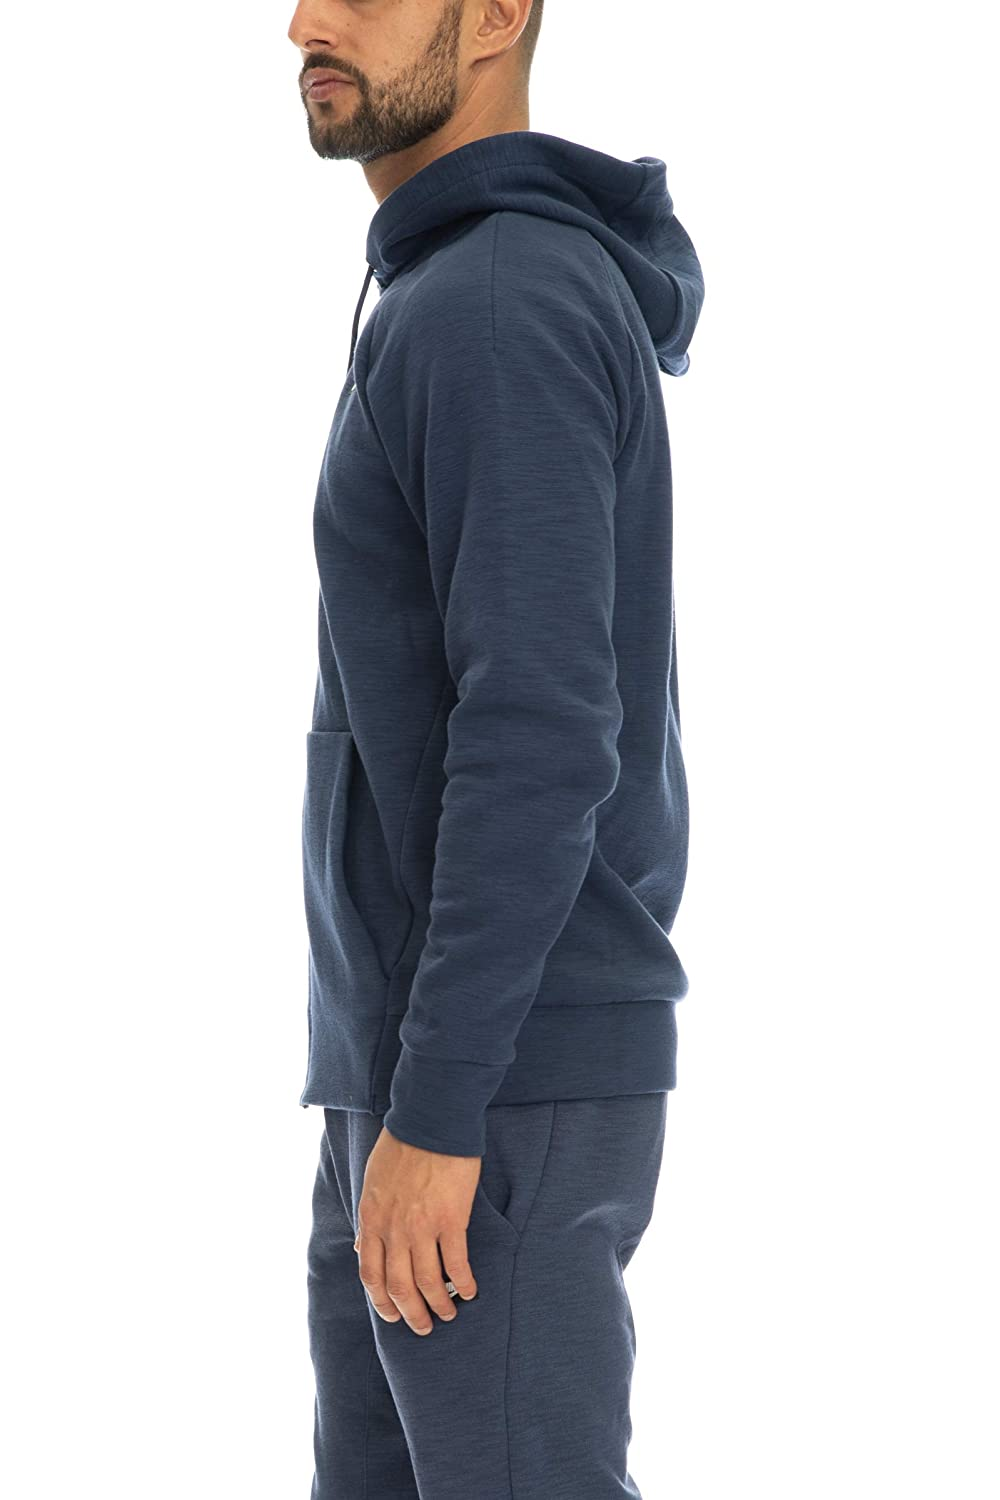 TALLA M. Nike Full Zip Optic Chaqueta con Capucha, Hombre